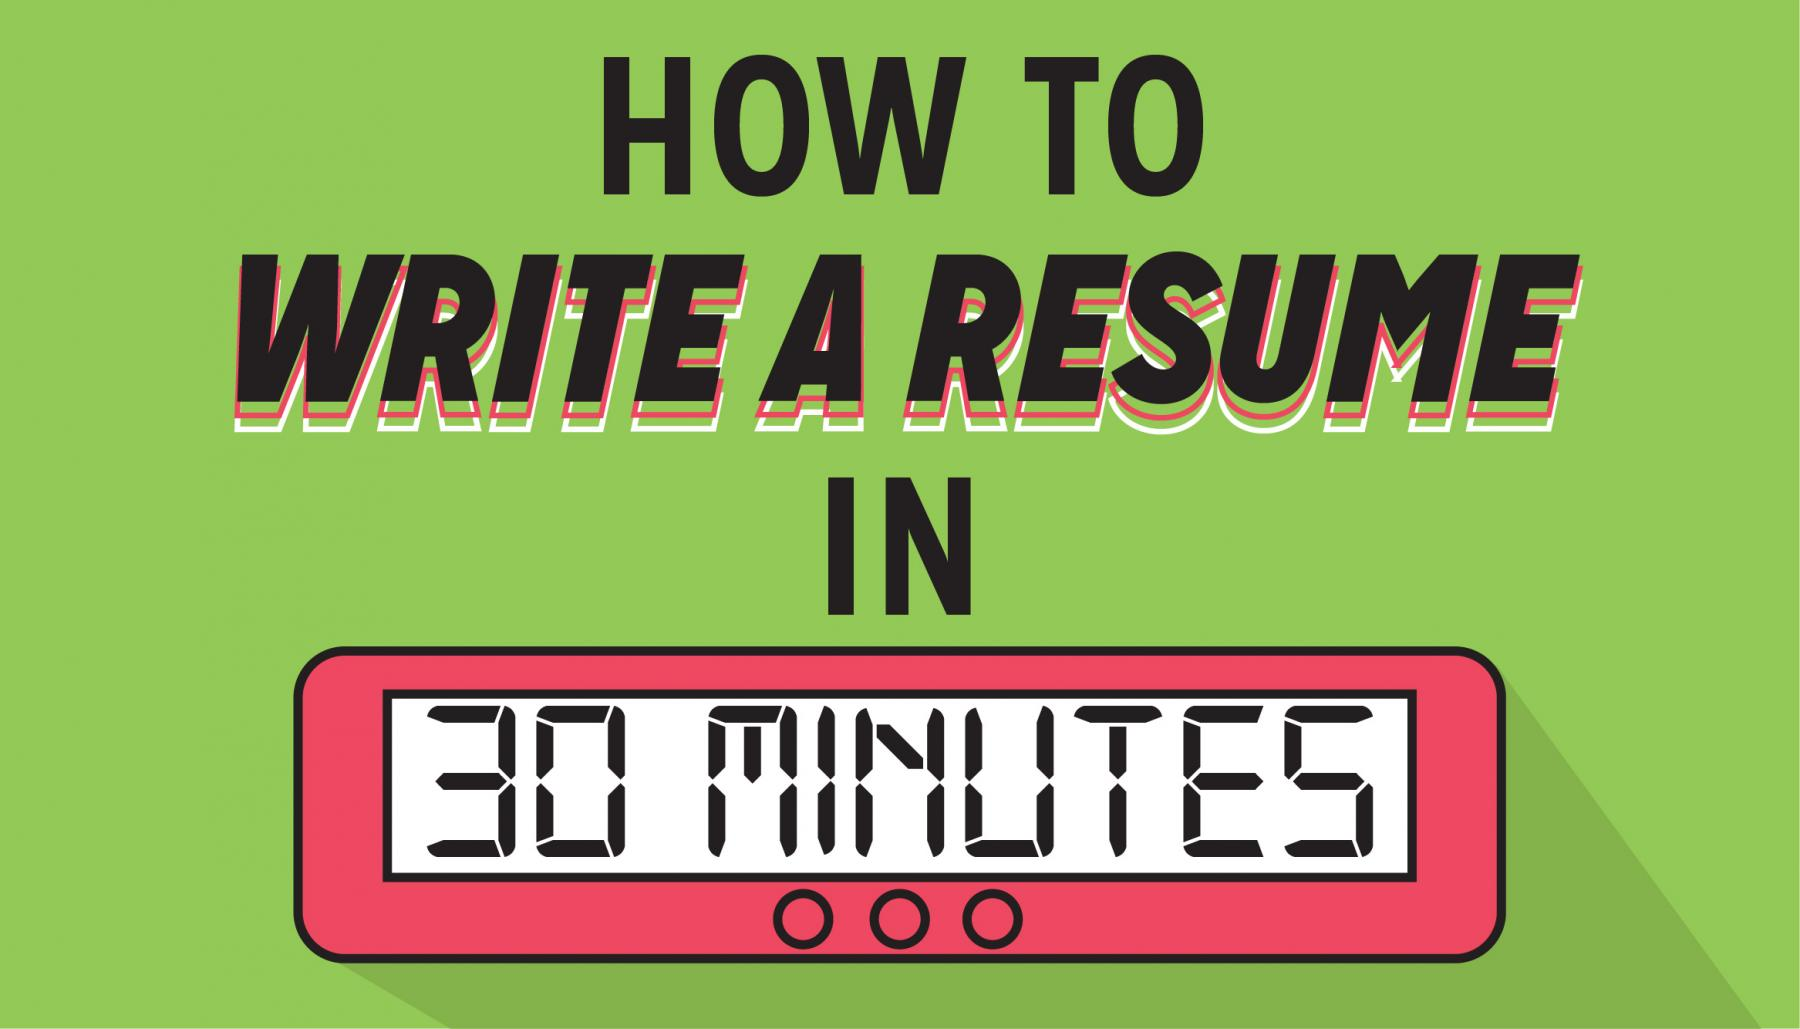 How to Write A Resume in 30 Minutes